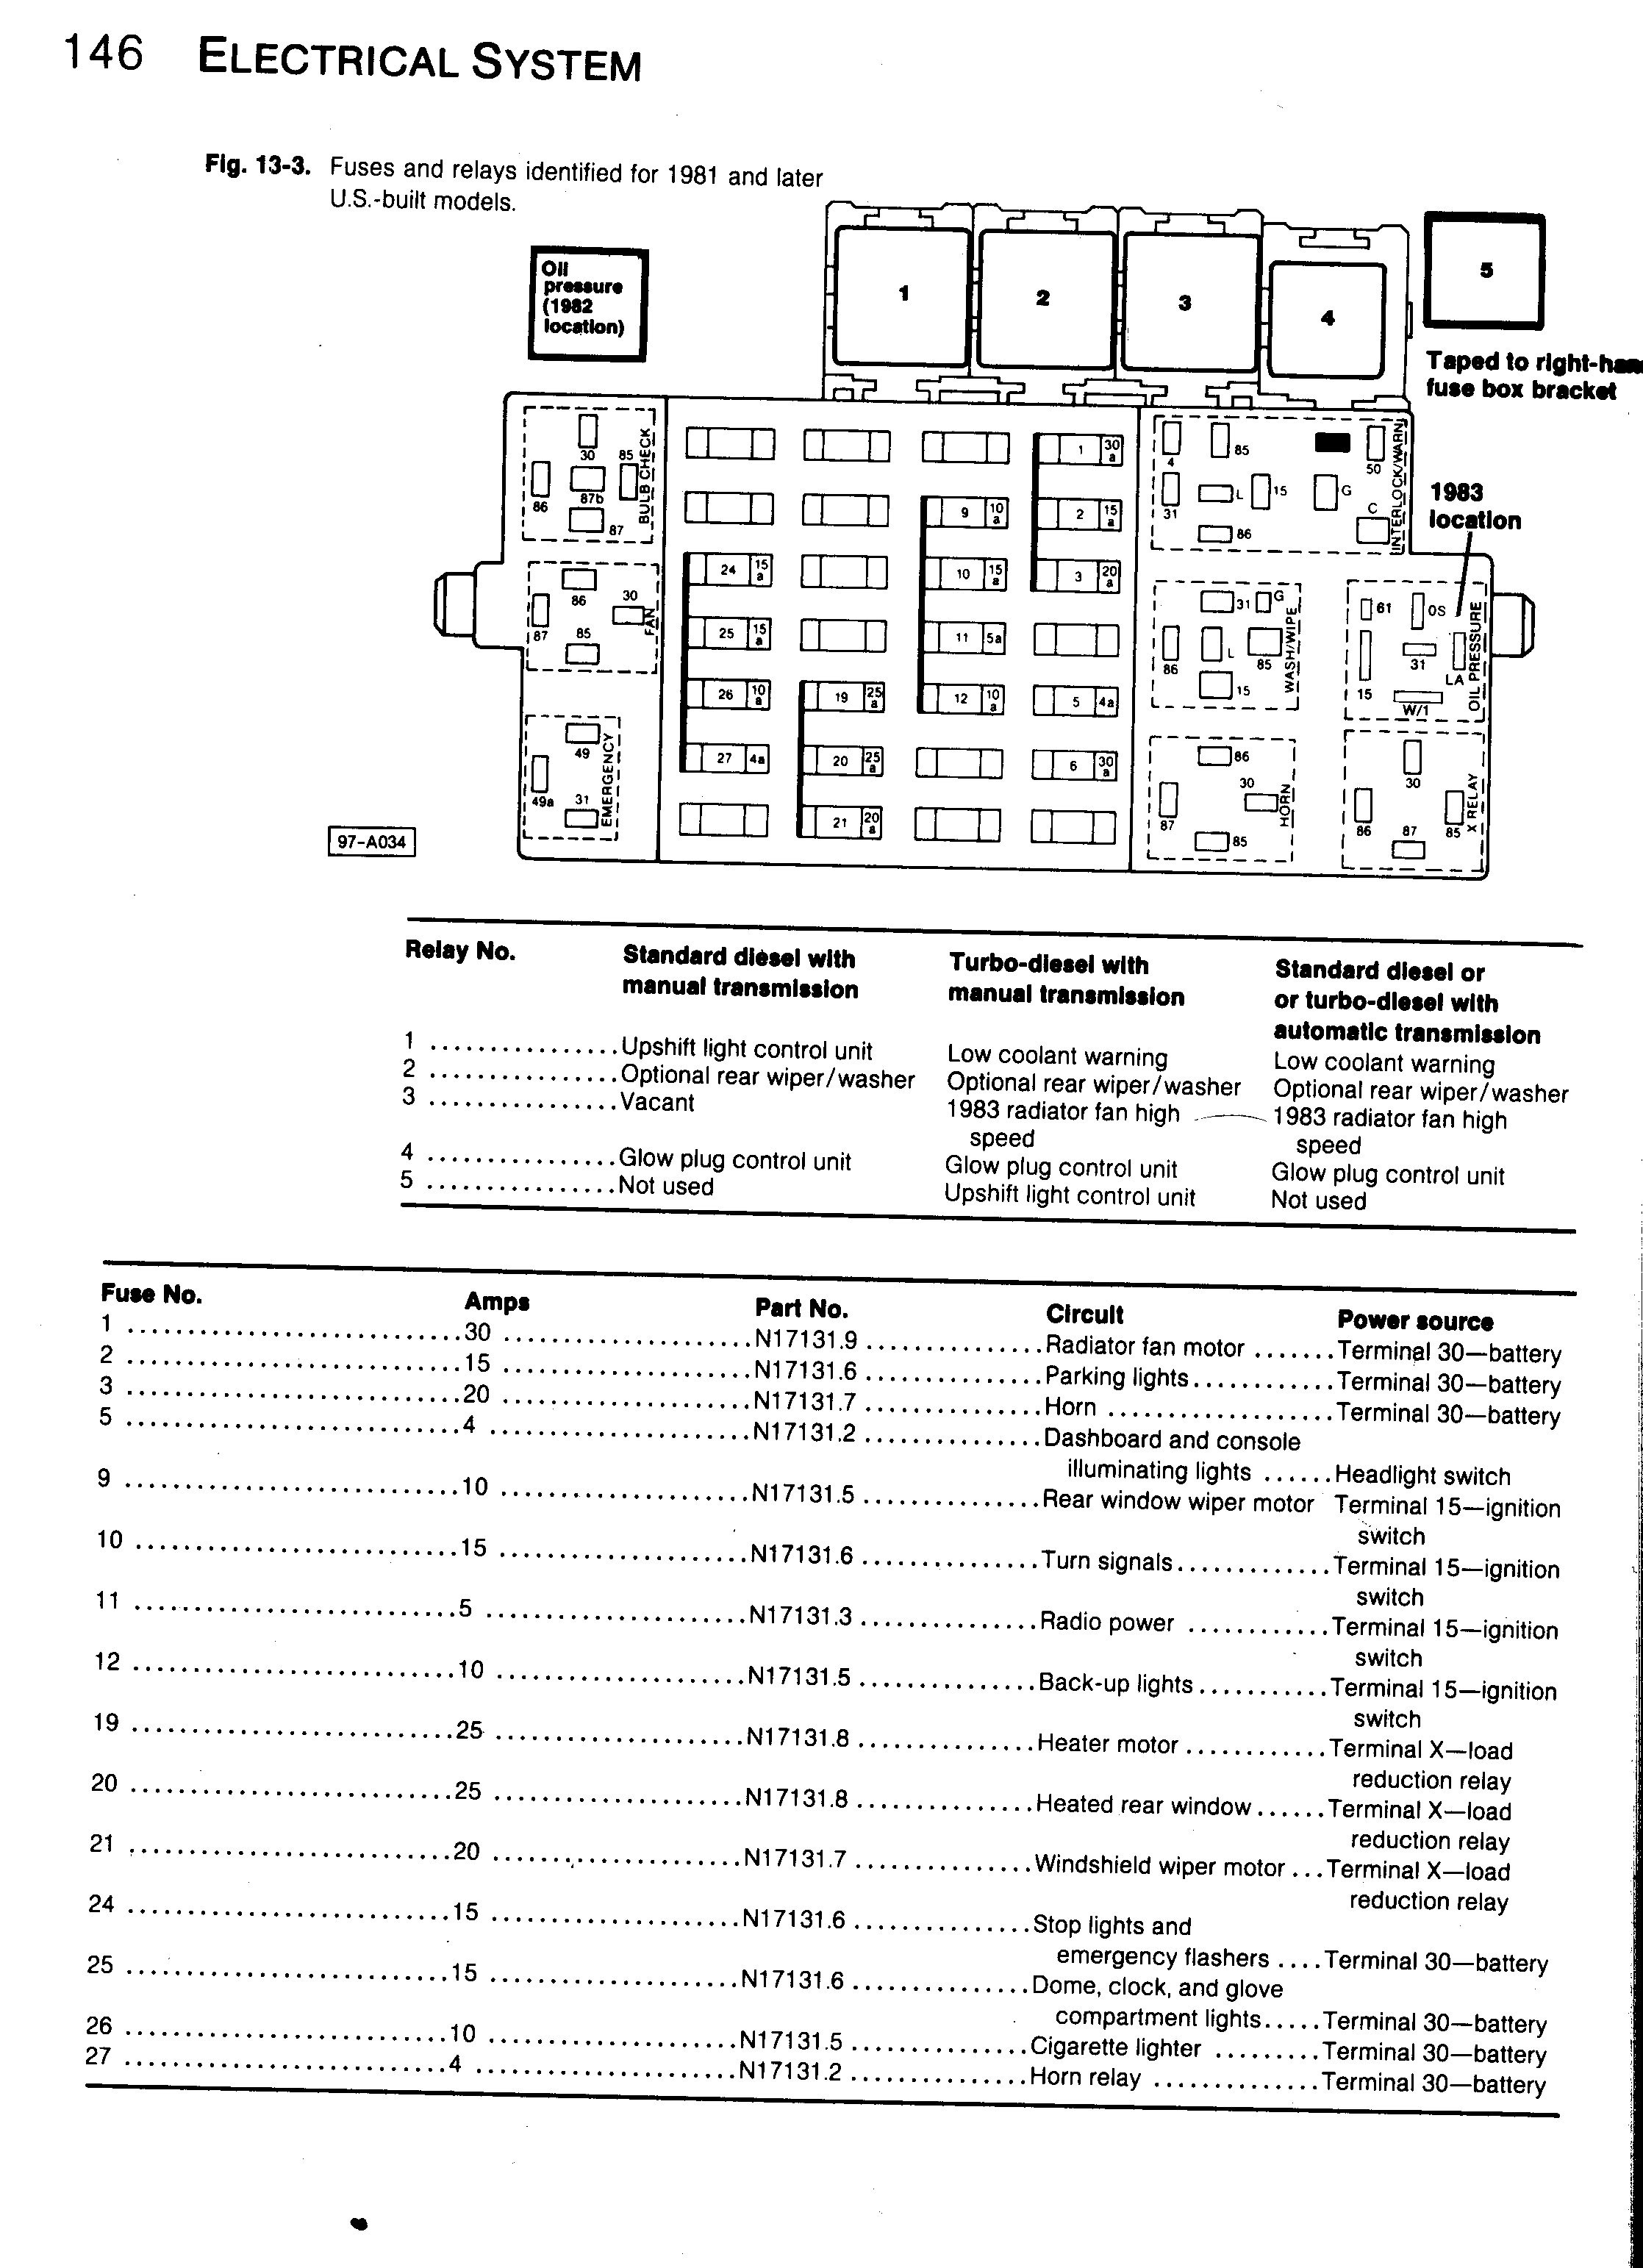 Hummer H3 Fuse Box Diagram - Wiring Diagram Replace dark-classroom -  dark-classroom.miramontiseo.it | 2005 Hummer 3 Fuse Box Location |  | dark-classroom.miramontiseo.it